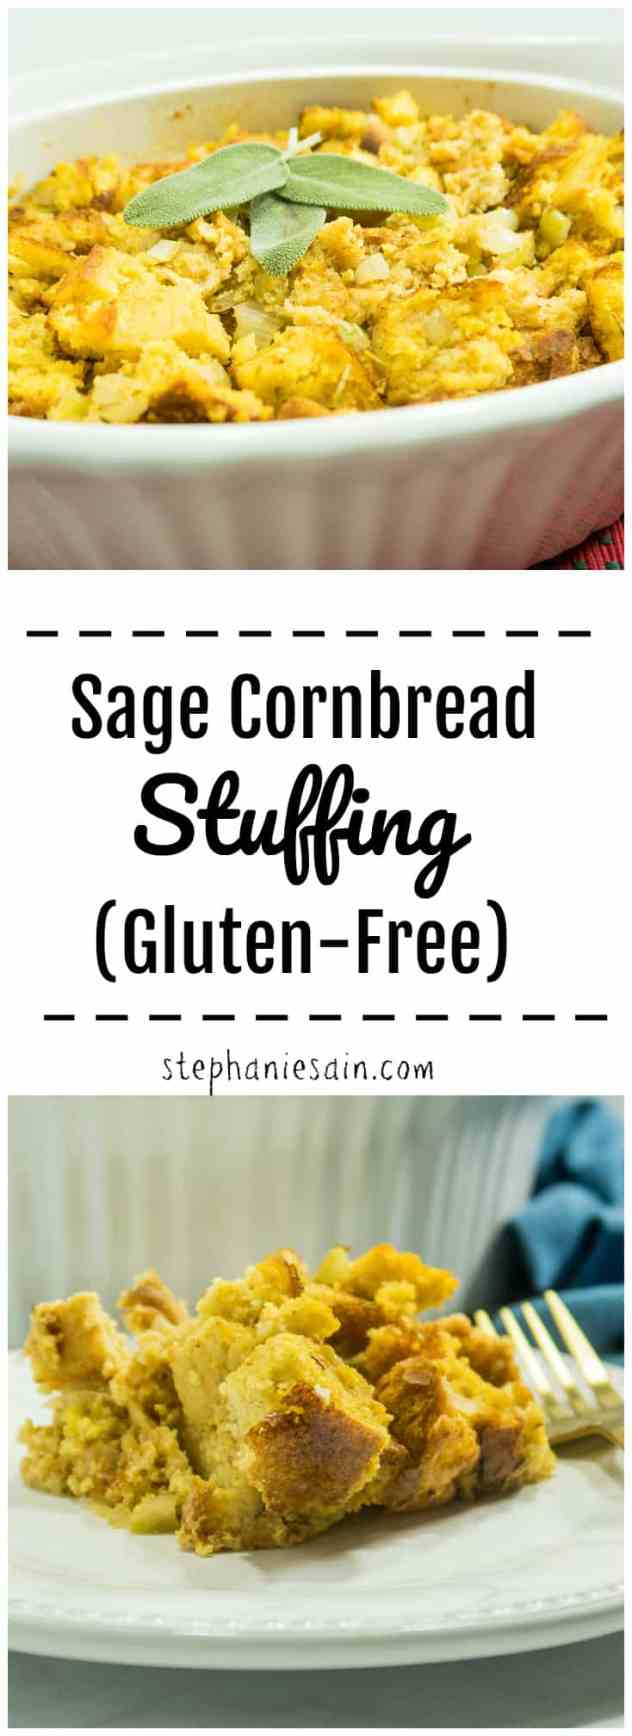 Sage Cornbread Stuffing is a simple classic stuffing flavored with sage, onions, garlic & celery. Perfectly seasoned & moist for a gluten free stuffing the whole family will love. Vegetarian & Gluten Free.